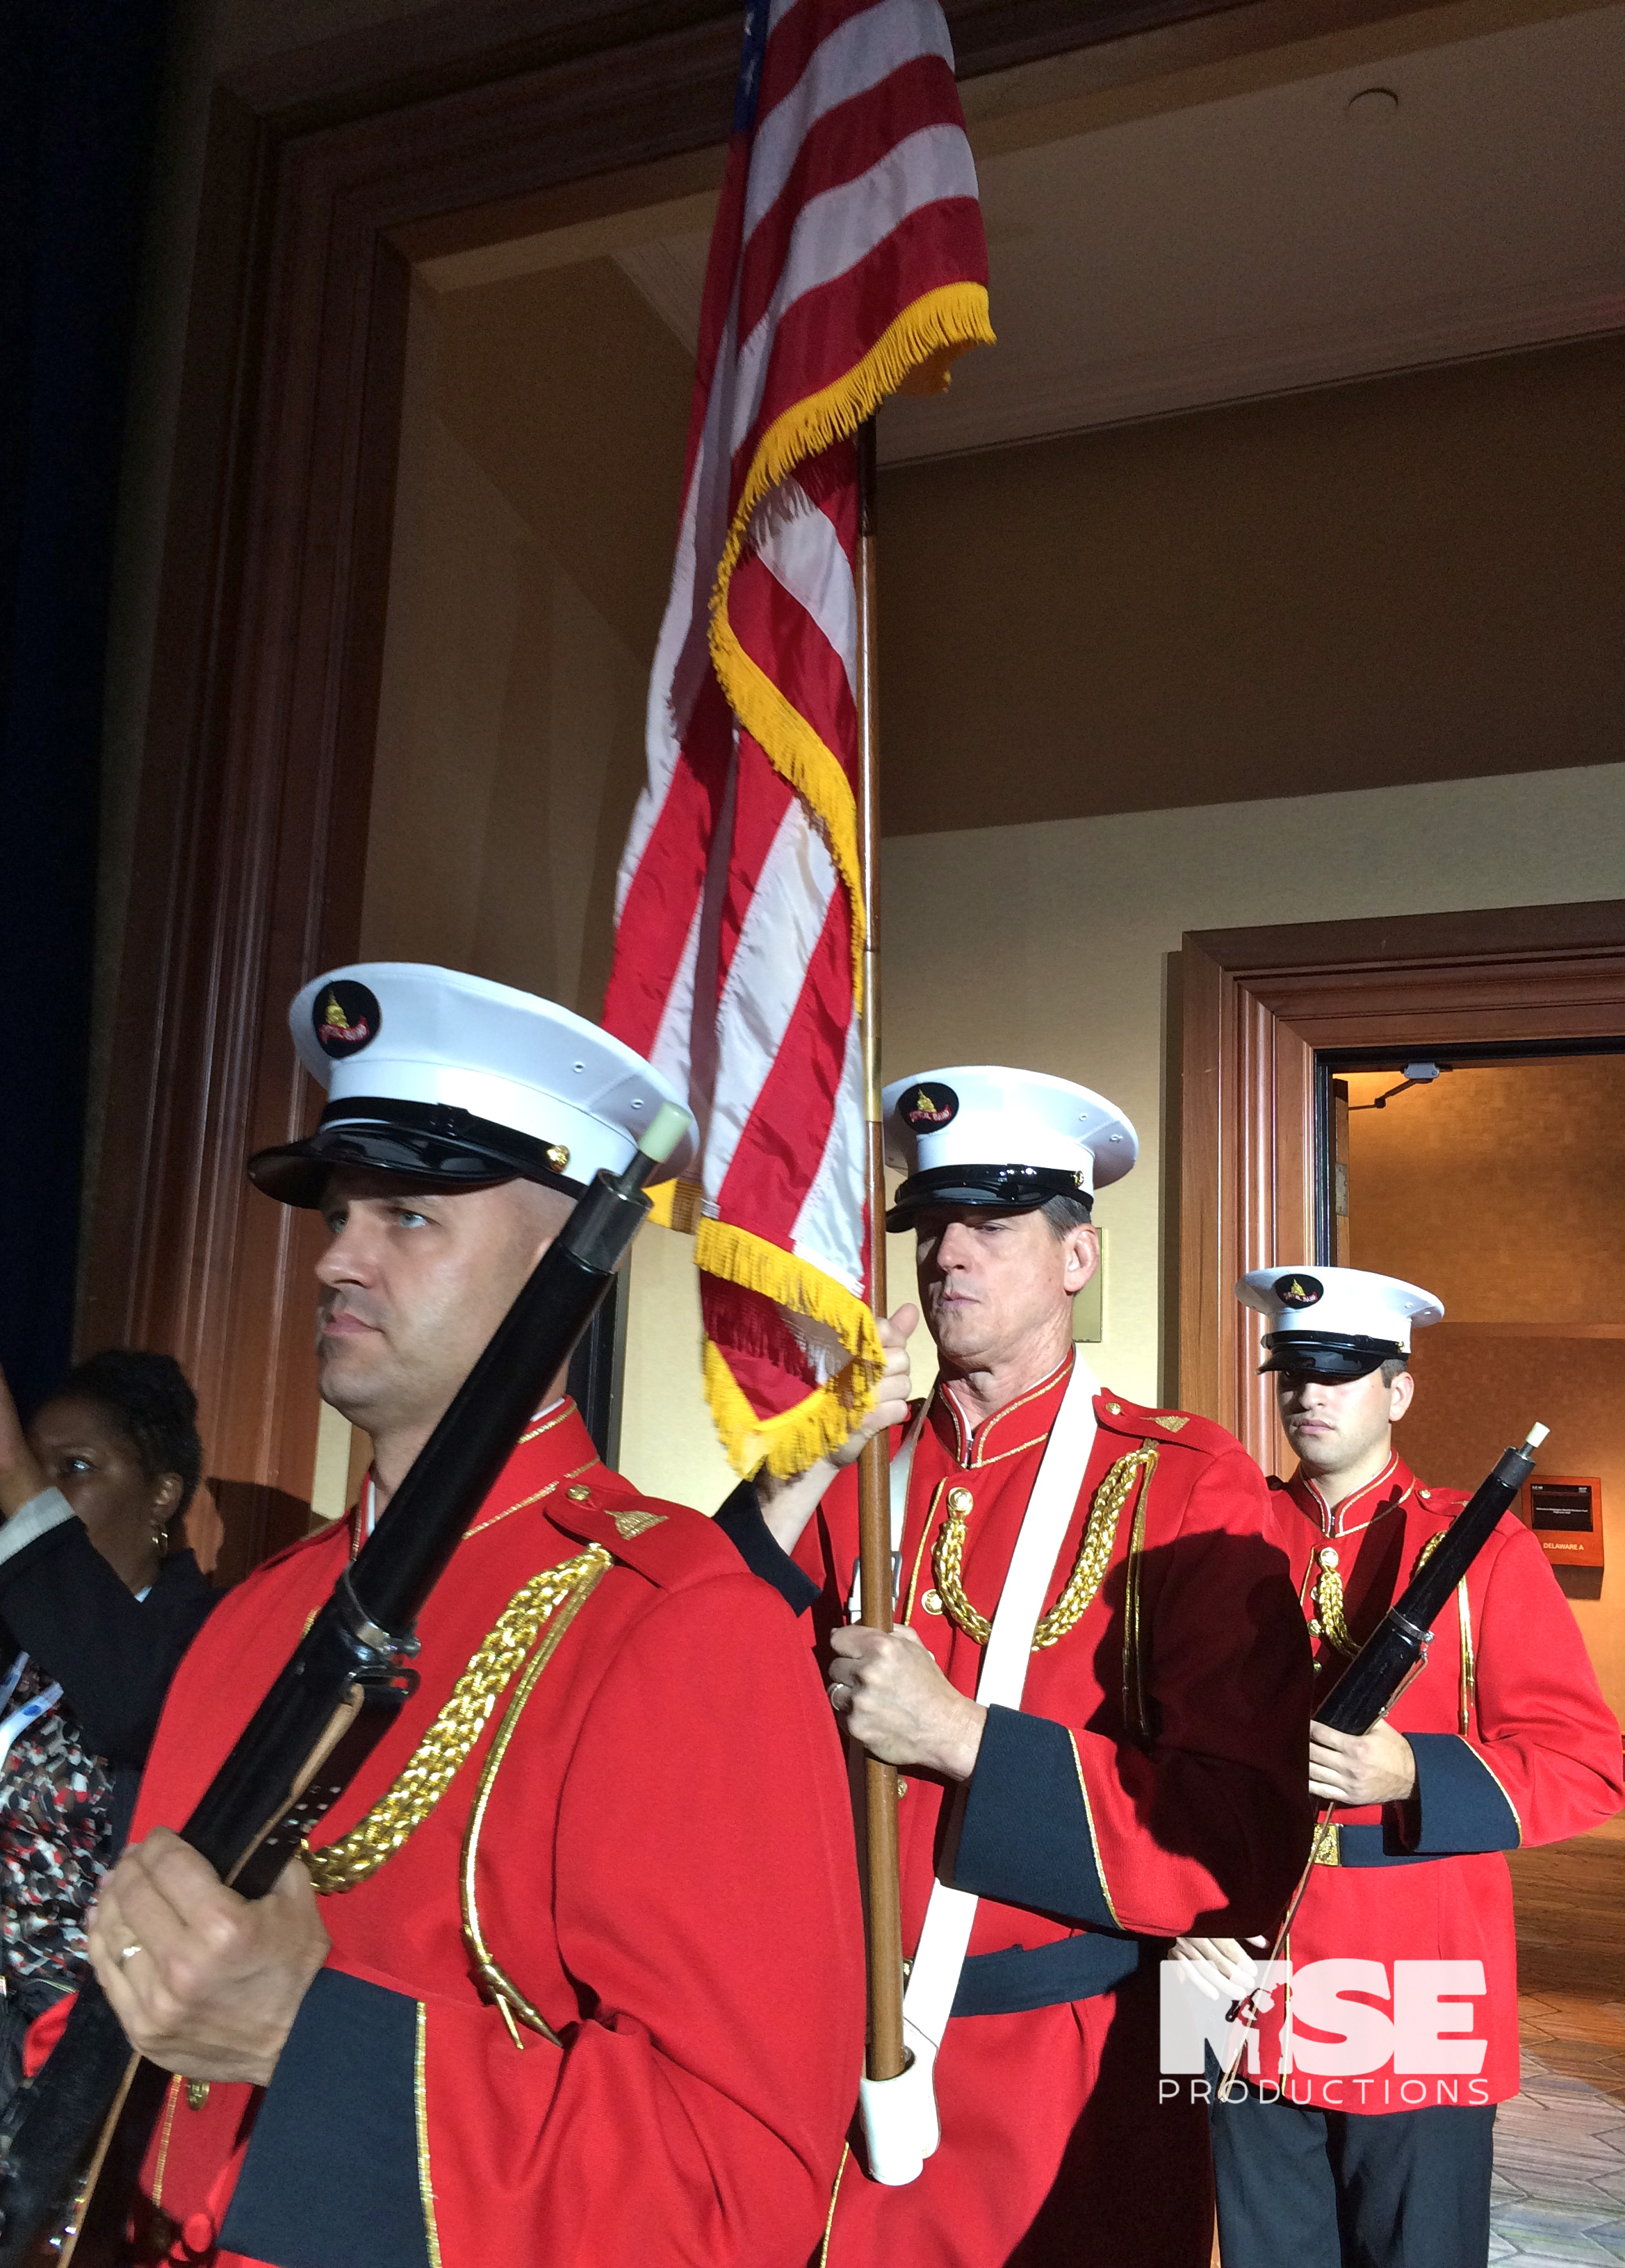 color-guard-entering-ballroom-mse-productions